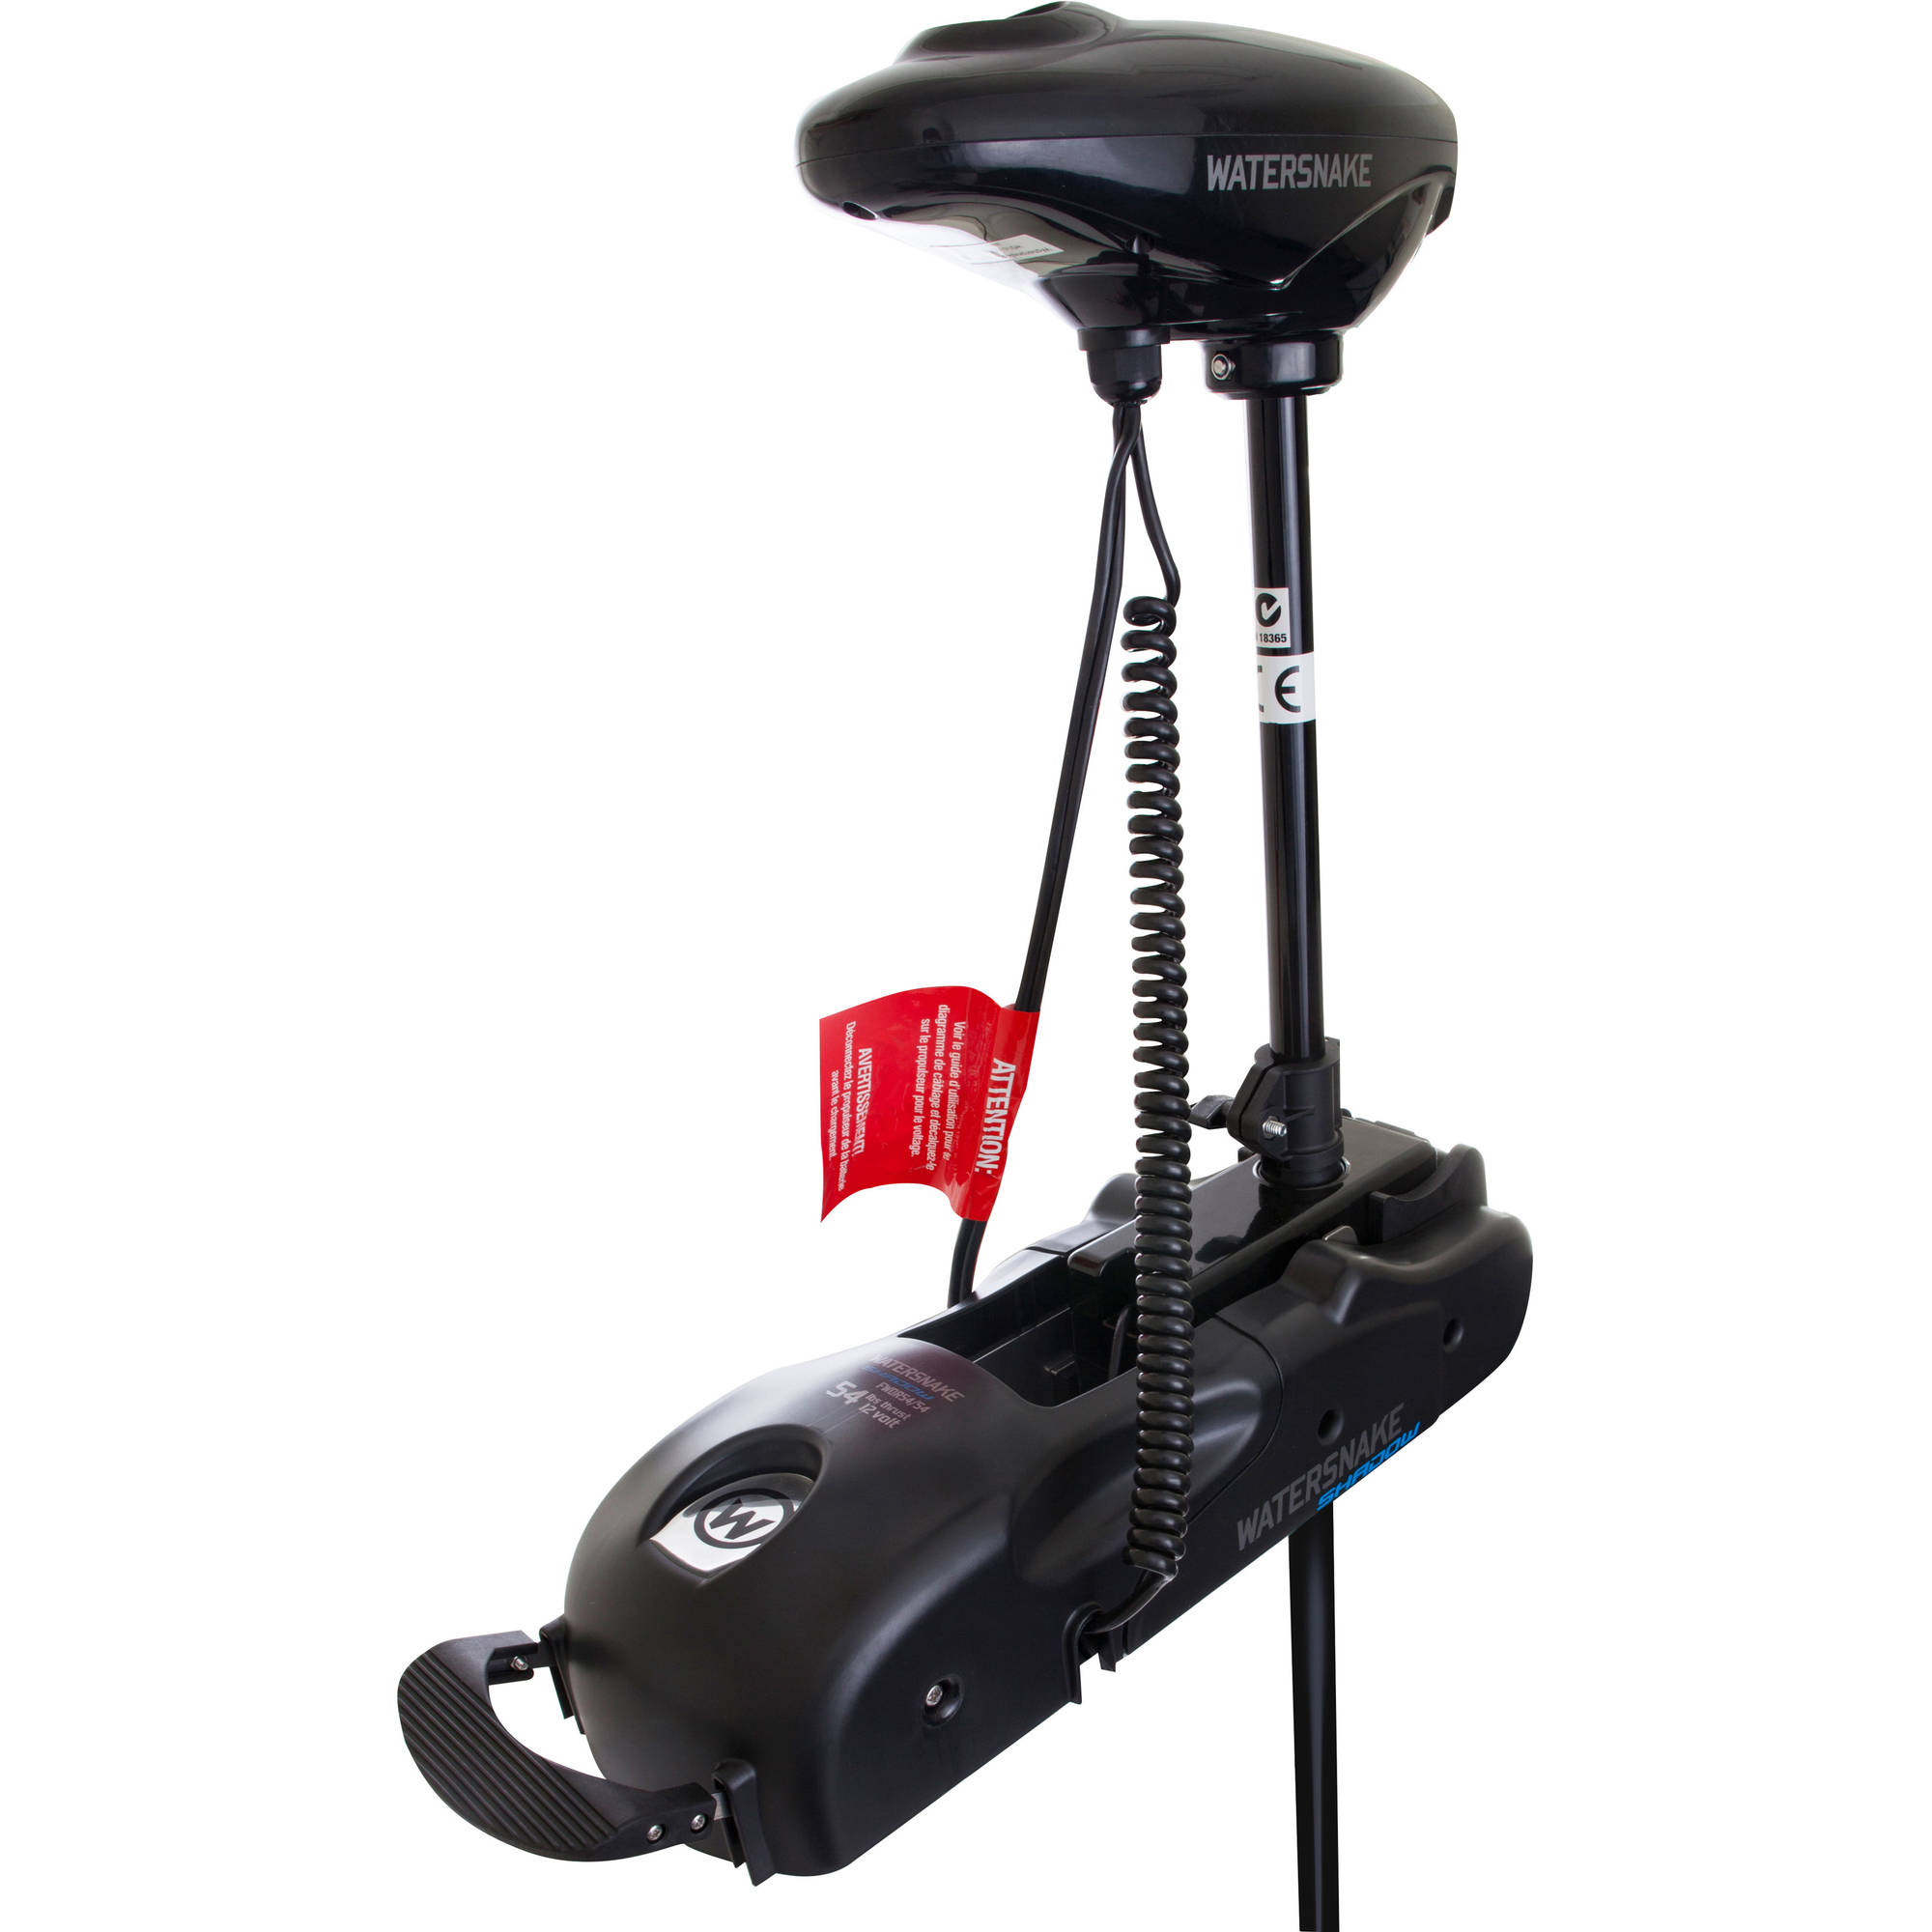 Watersnake Shadow Trolling Motor, FW 54/54 BM